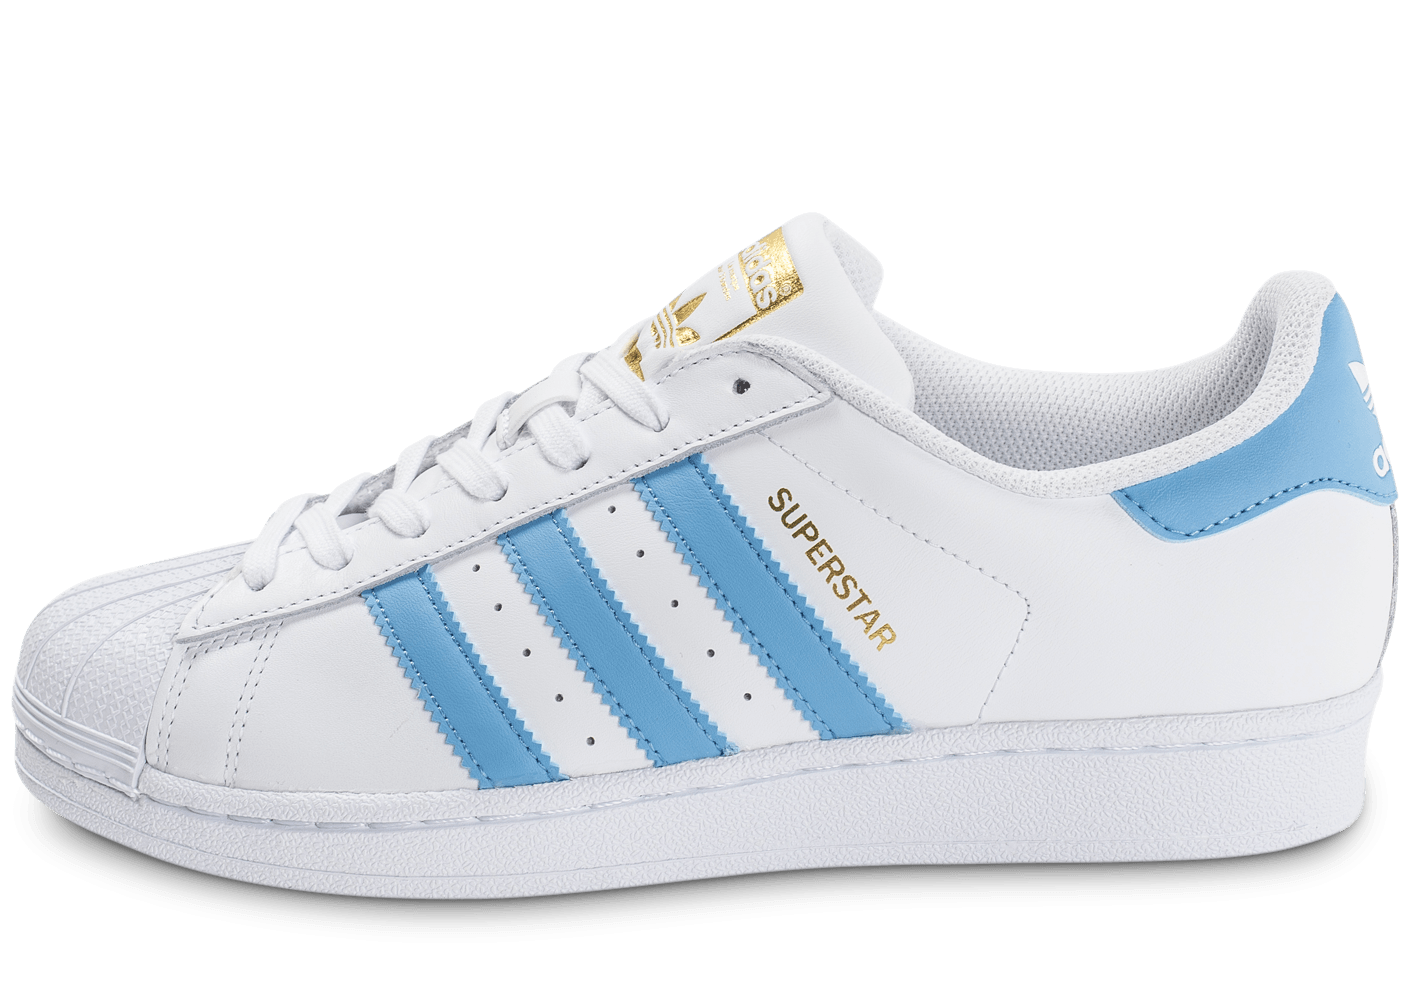 adidas superstar blanc et bleu ciel chaussures homme chausport. Black Bedroom Furniture Sets. Home Design Ideas